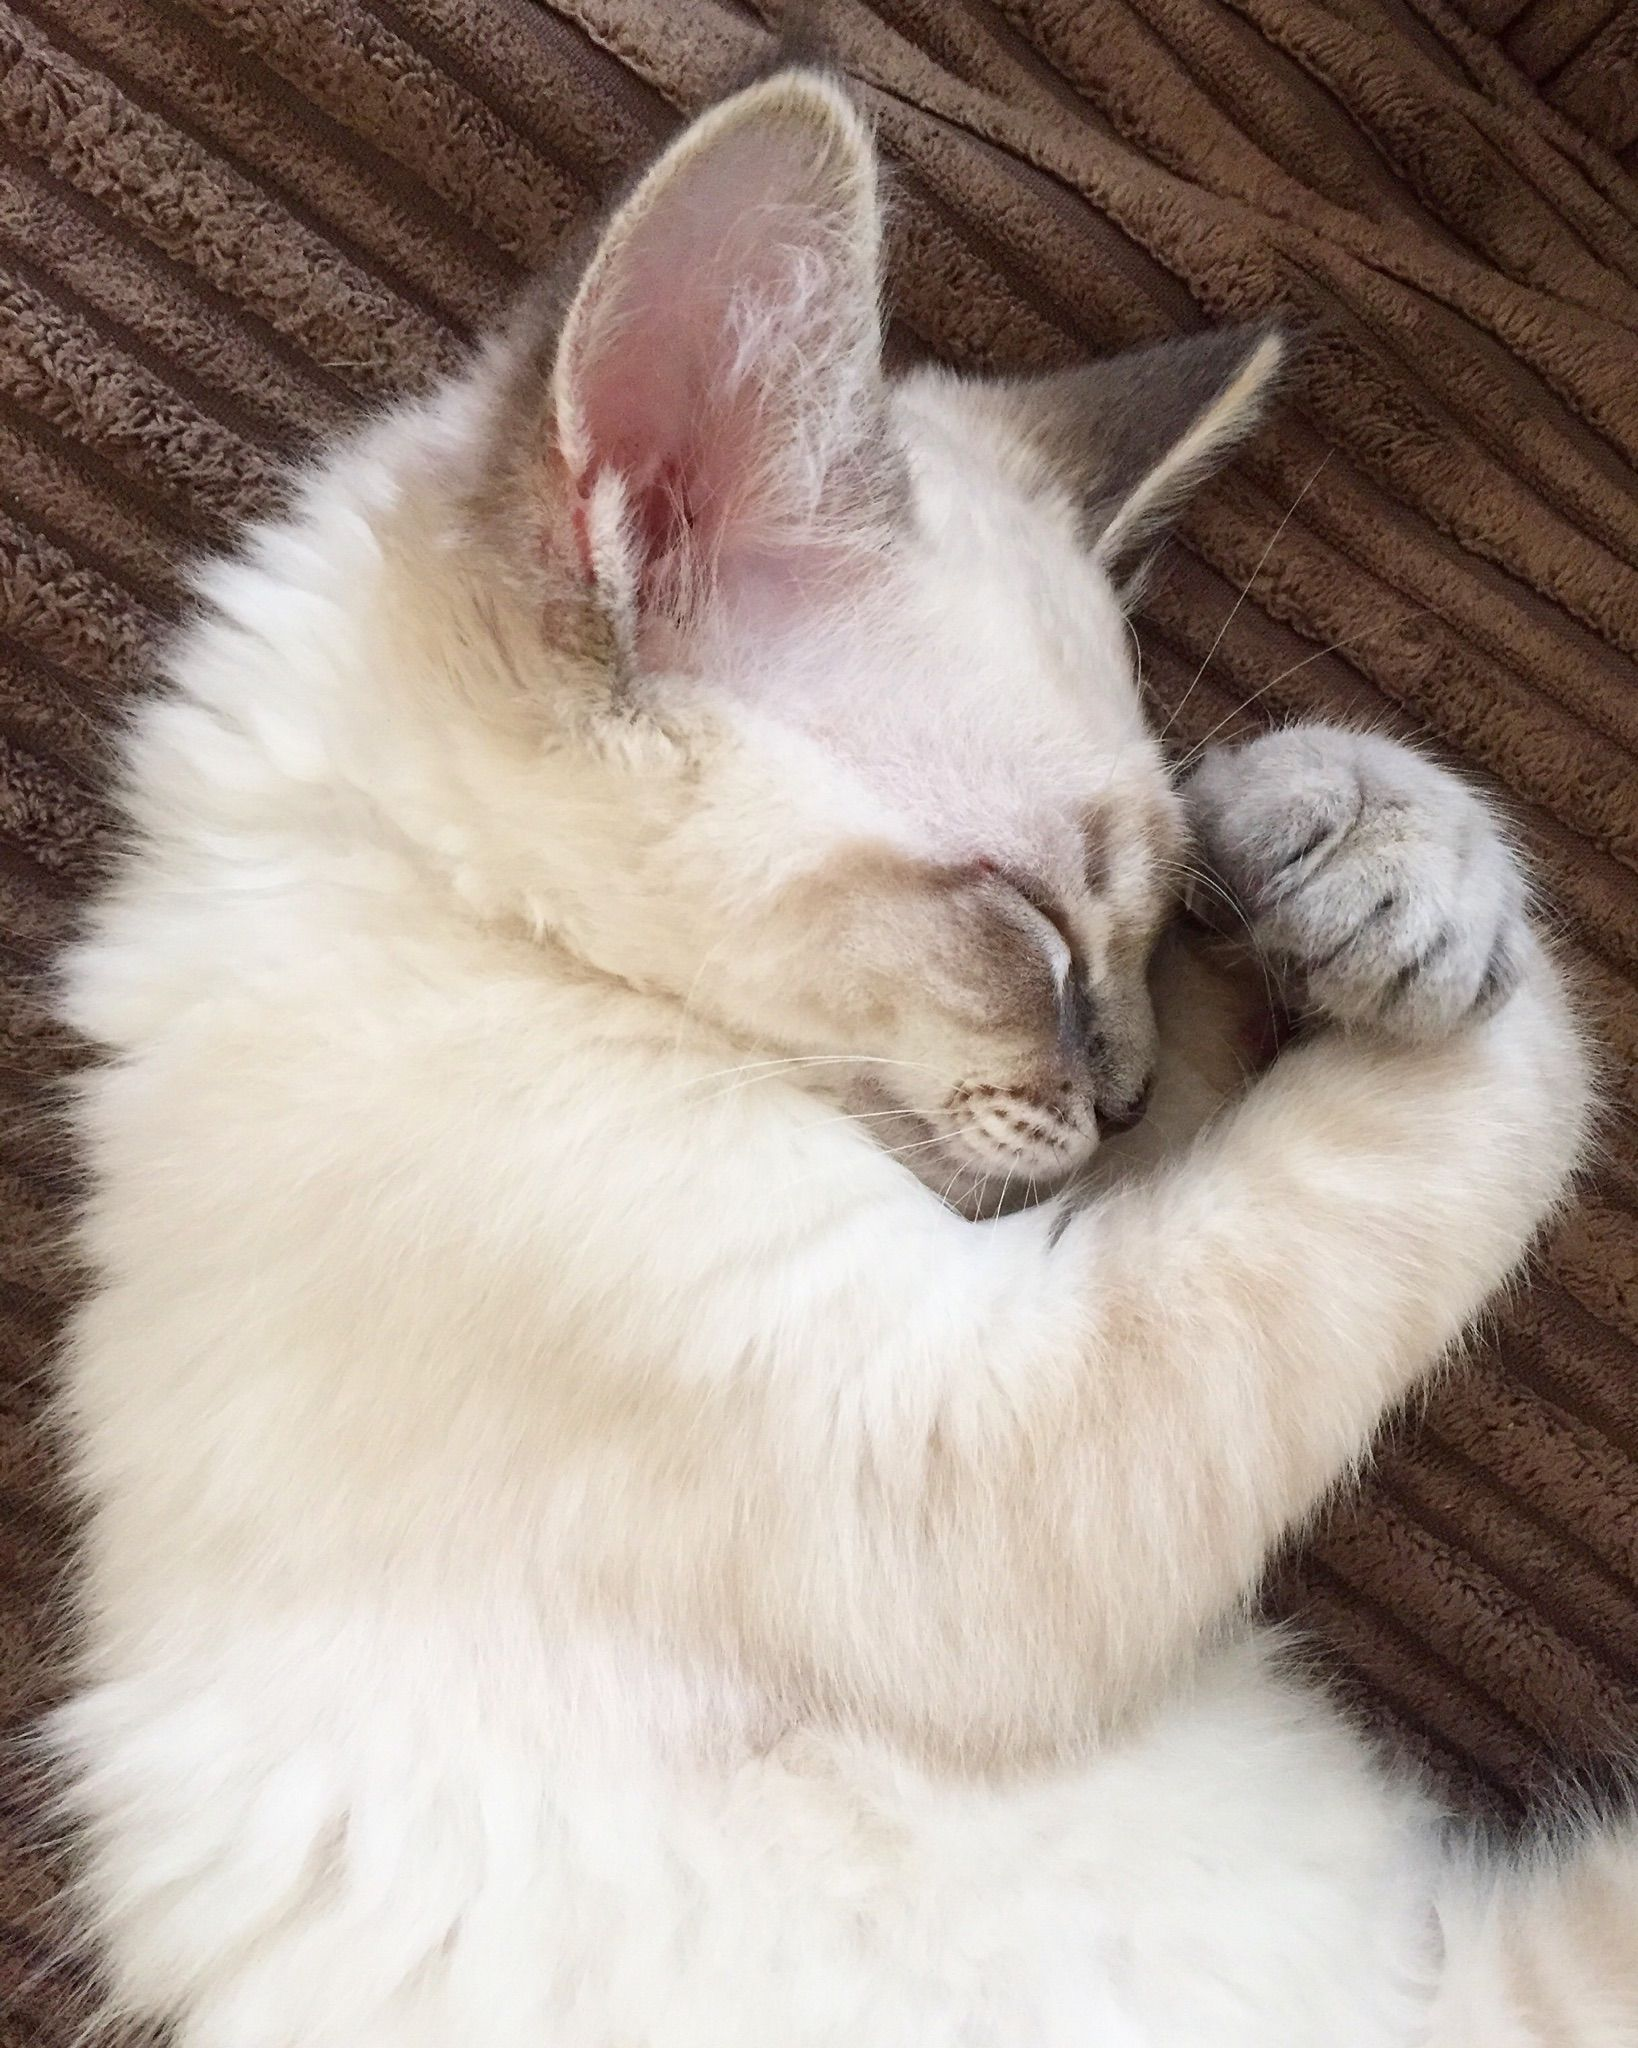 Ragdoll Kitten Cat Blueeyes Eyes Kitty Fluffy Cute Cats Pet Pets Animals Baby Animal Beautiful Boy Gorgeous Adorable Baby Animals Cute Cats And Kittens Animals